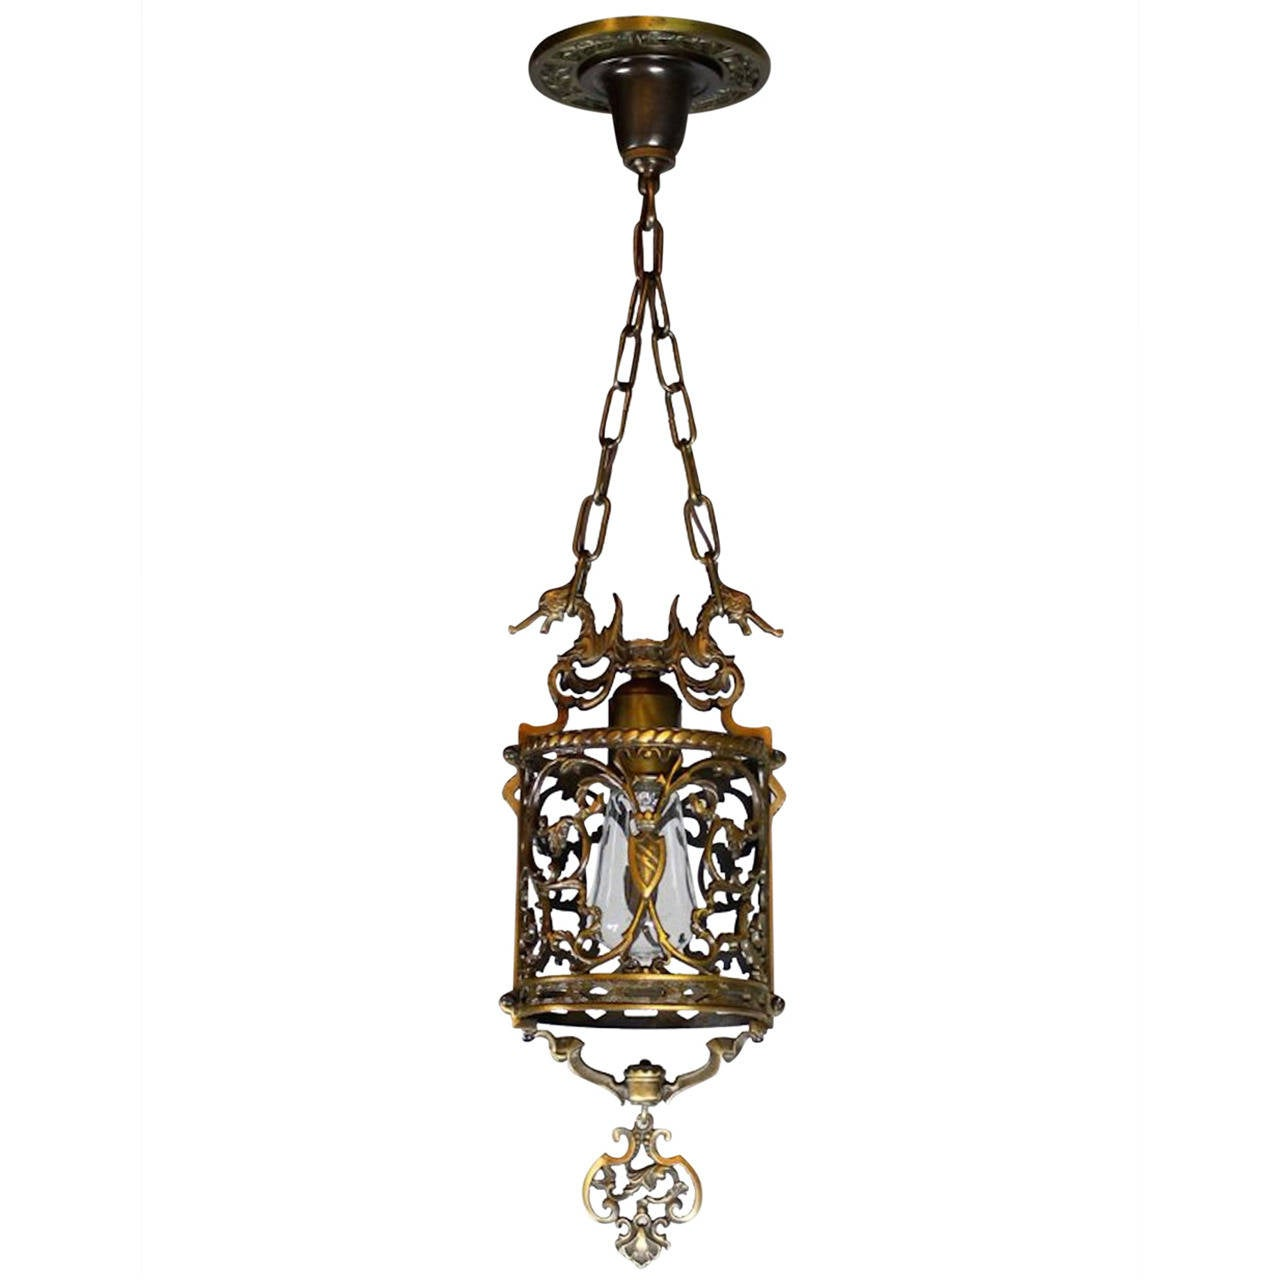 Spanish Colonial Revival Light Fixtures Lighting Ideas